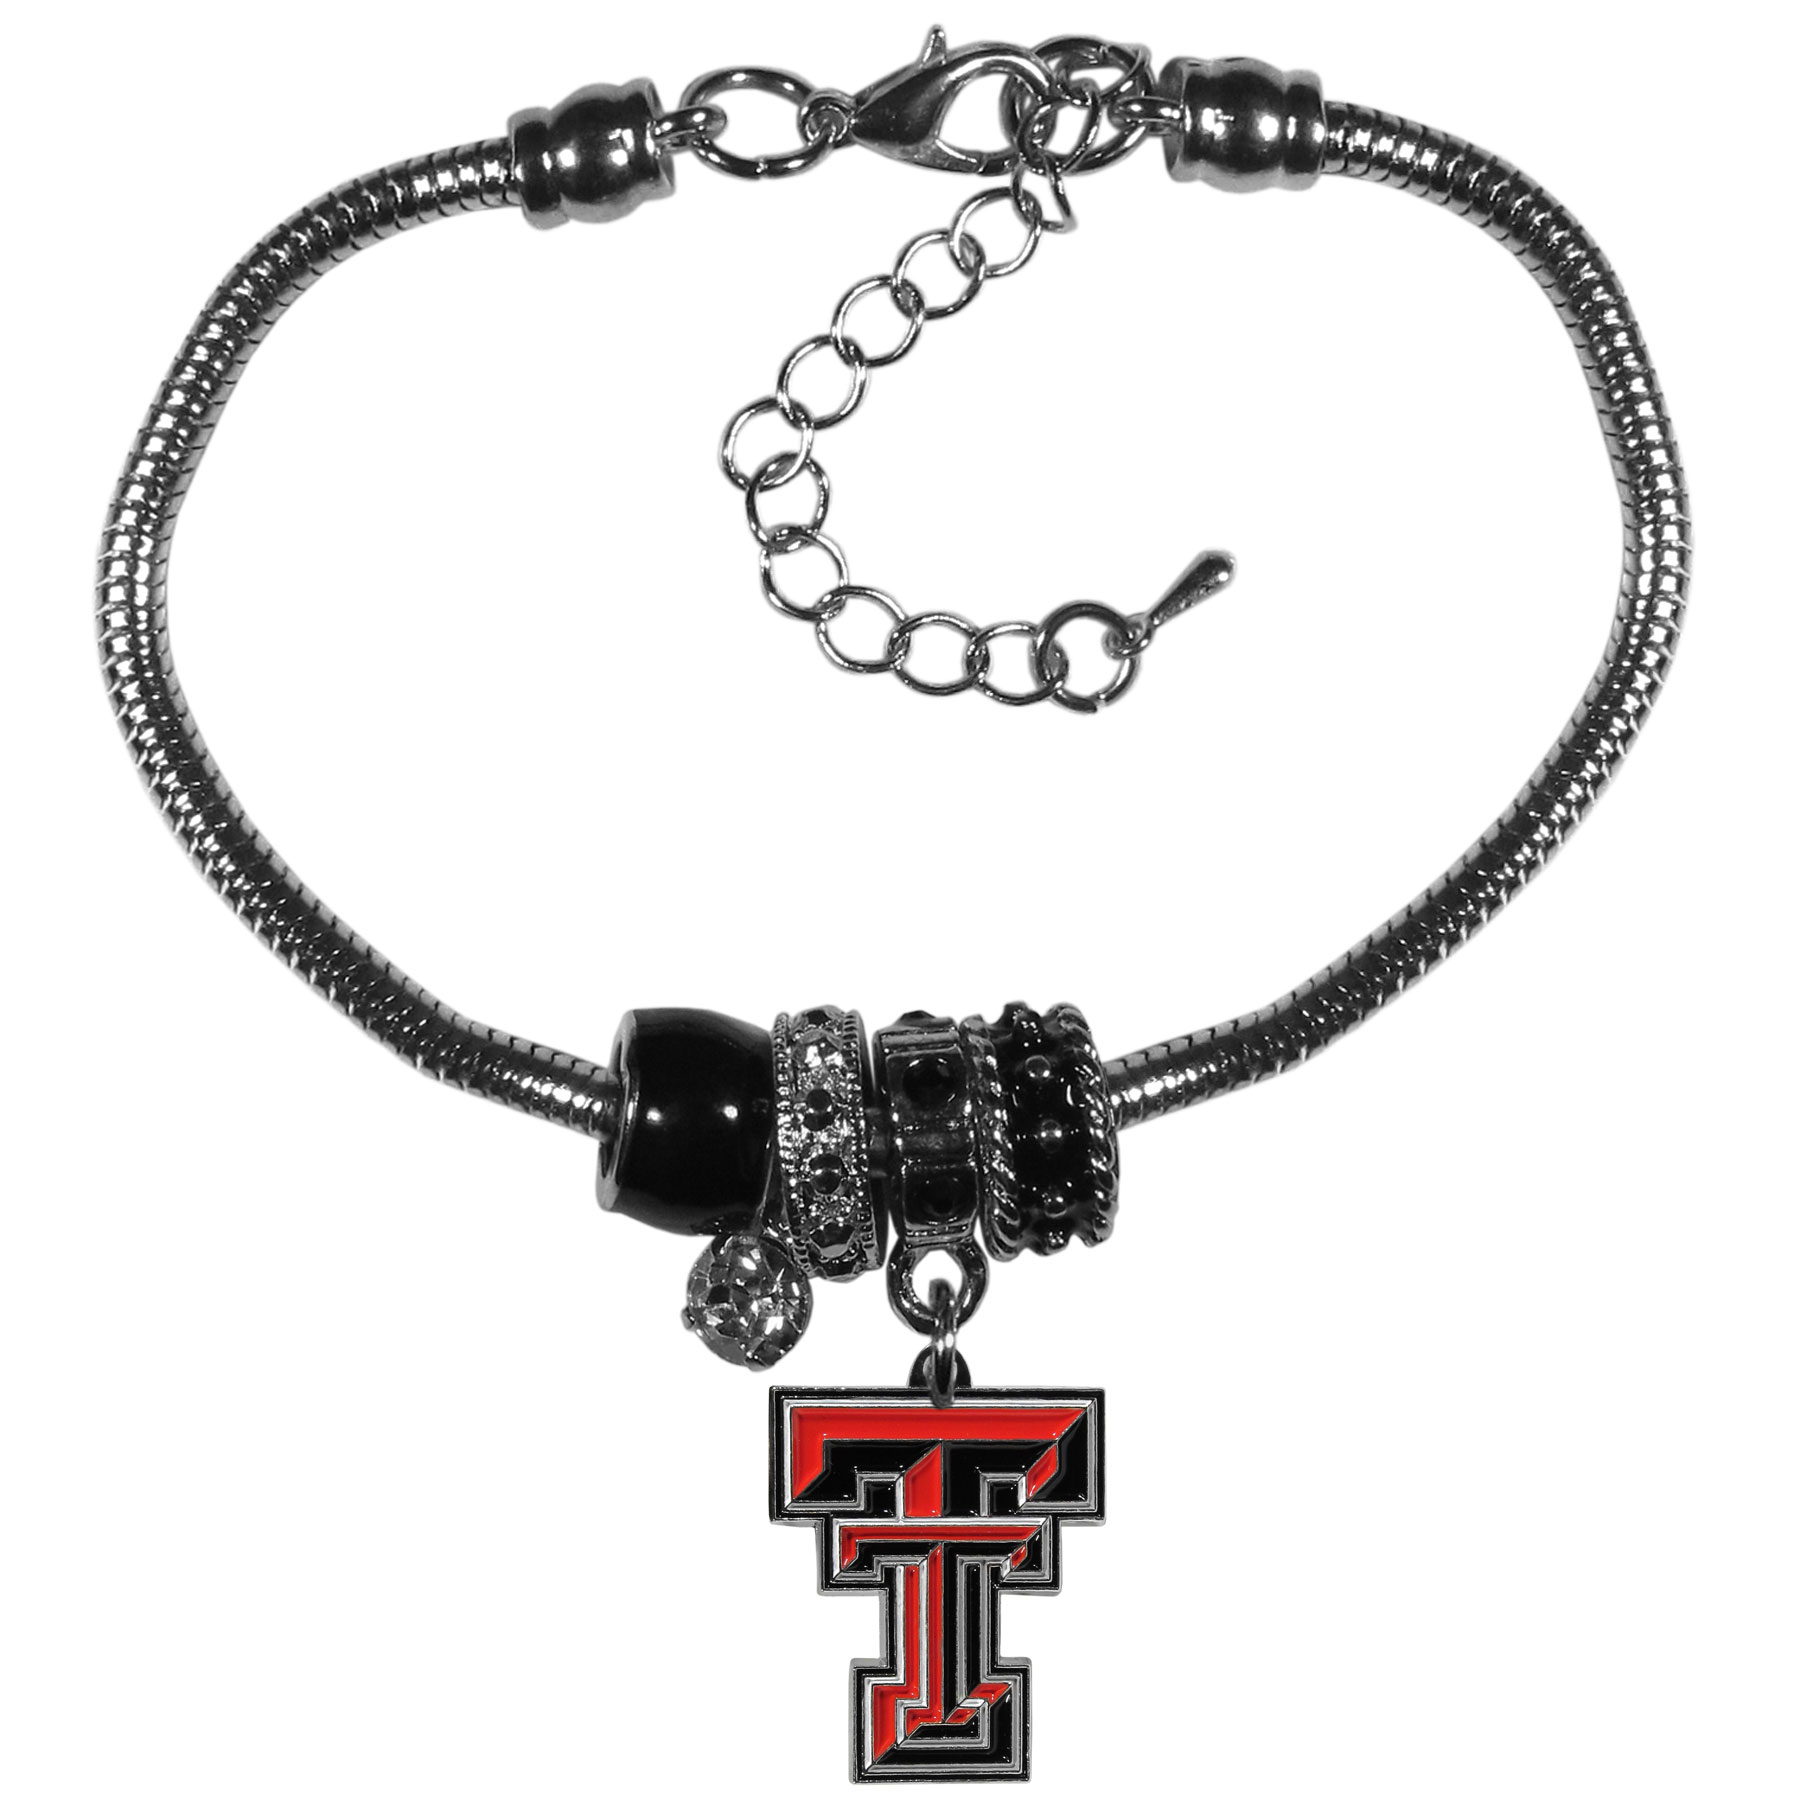 Texas Tech Raiders Euro Bead Bracelet - We have combined the wildly popular Euro style beads with your favorite team to create our  Texas Tech Raiders bead bracelet. The 7.5 inch snake chain with 2 inch extender features 4 Euro beads with enameled team colors and rhinestone accents with a high polish, nickel free charm and rhinestone charm. Perfect way to show off your team pride.